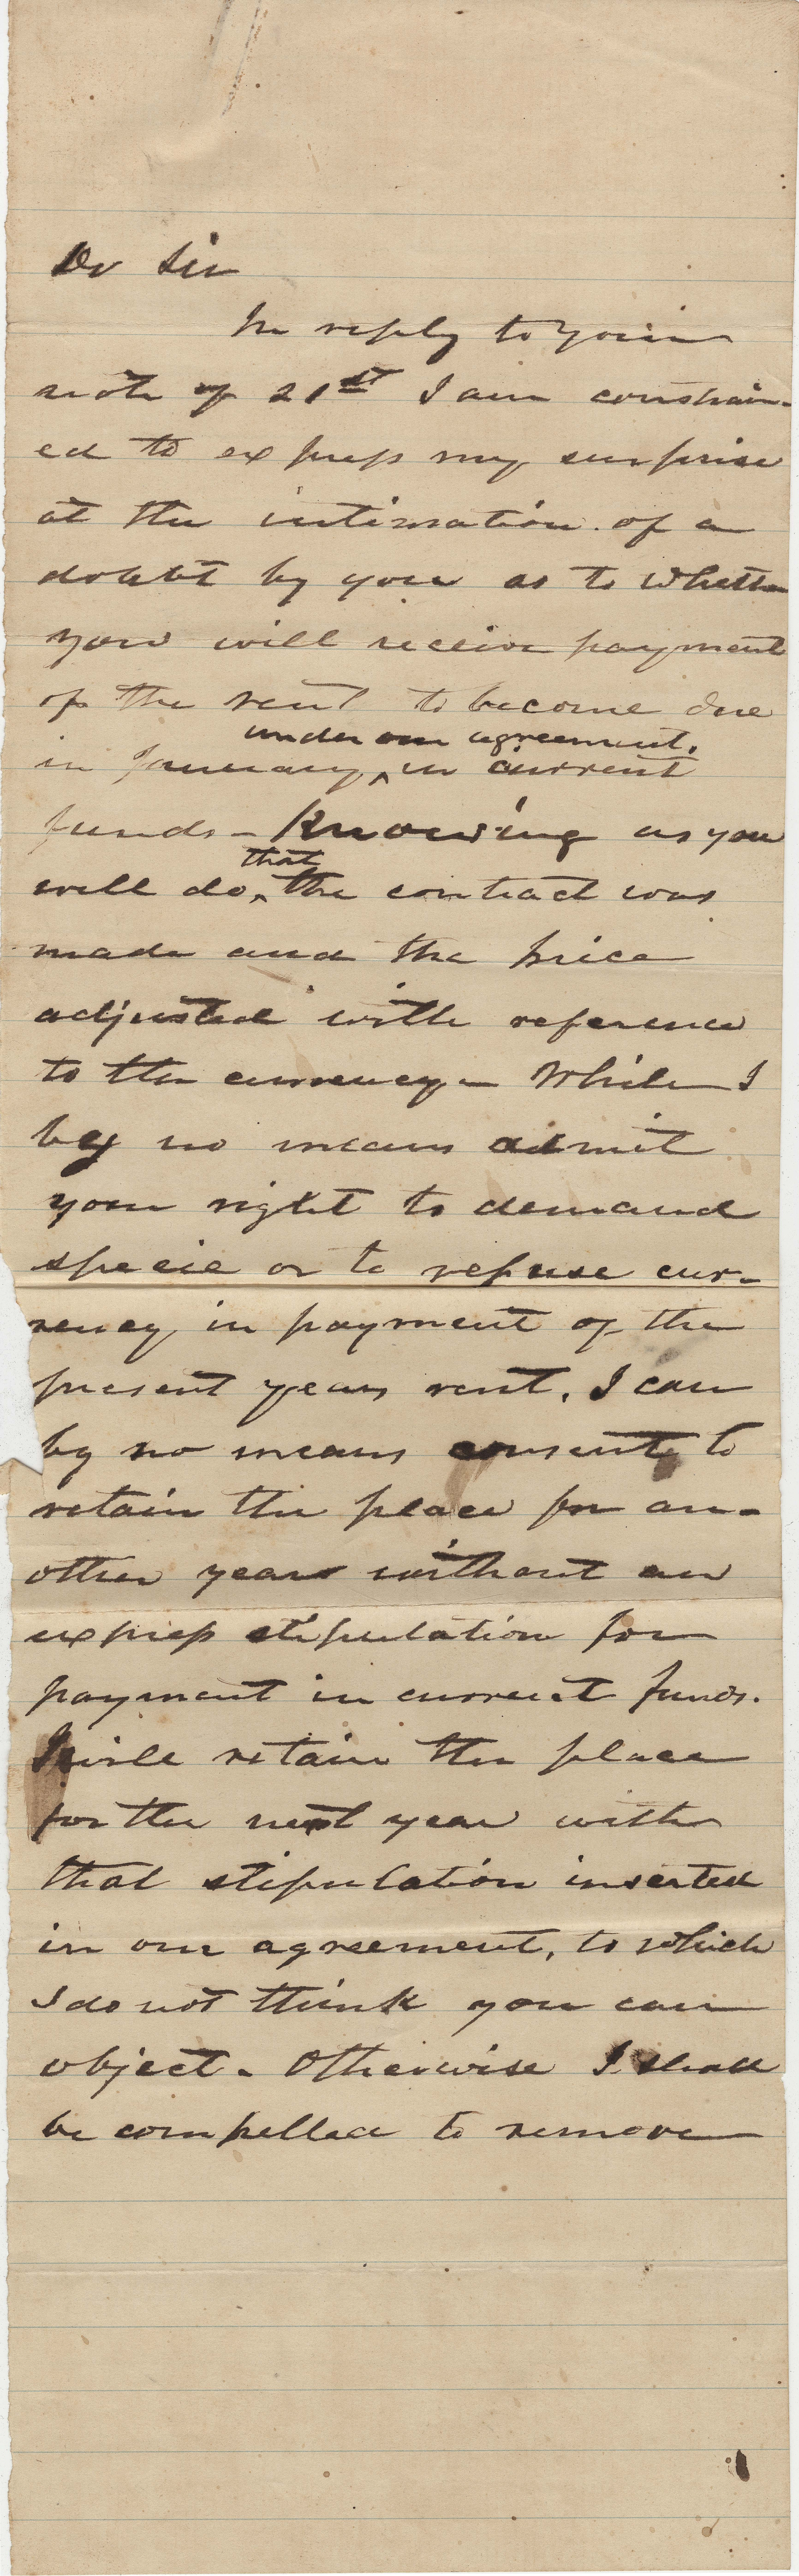 215. James B. Heyward to Frank Myers -- 1864